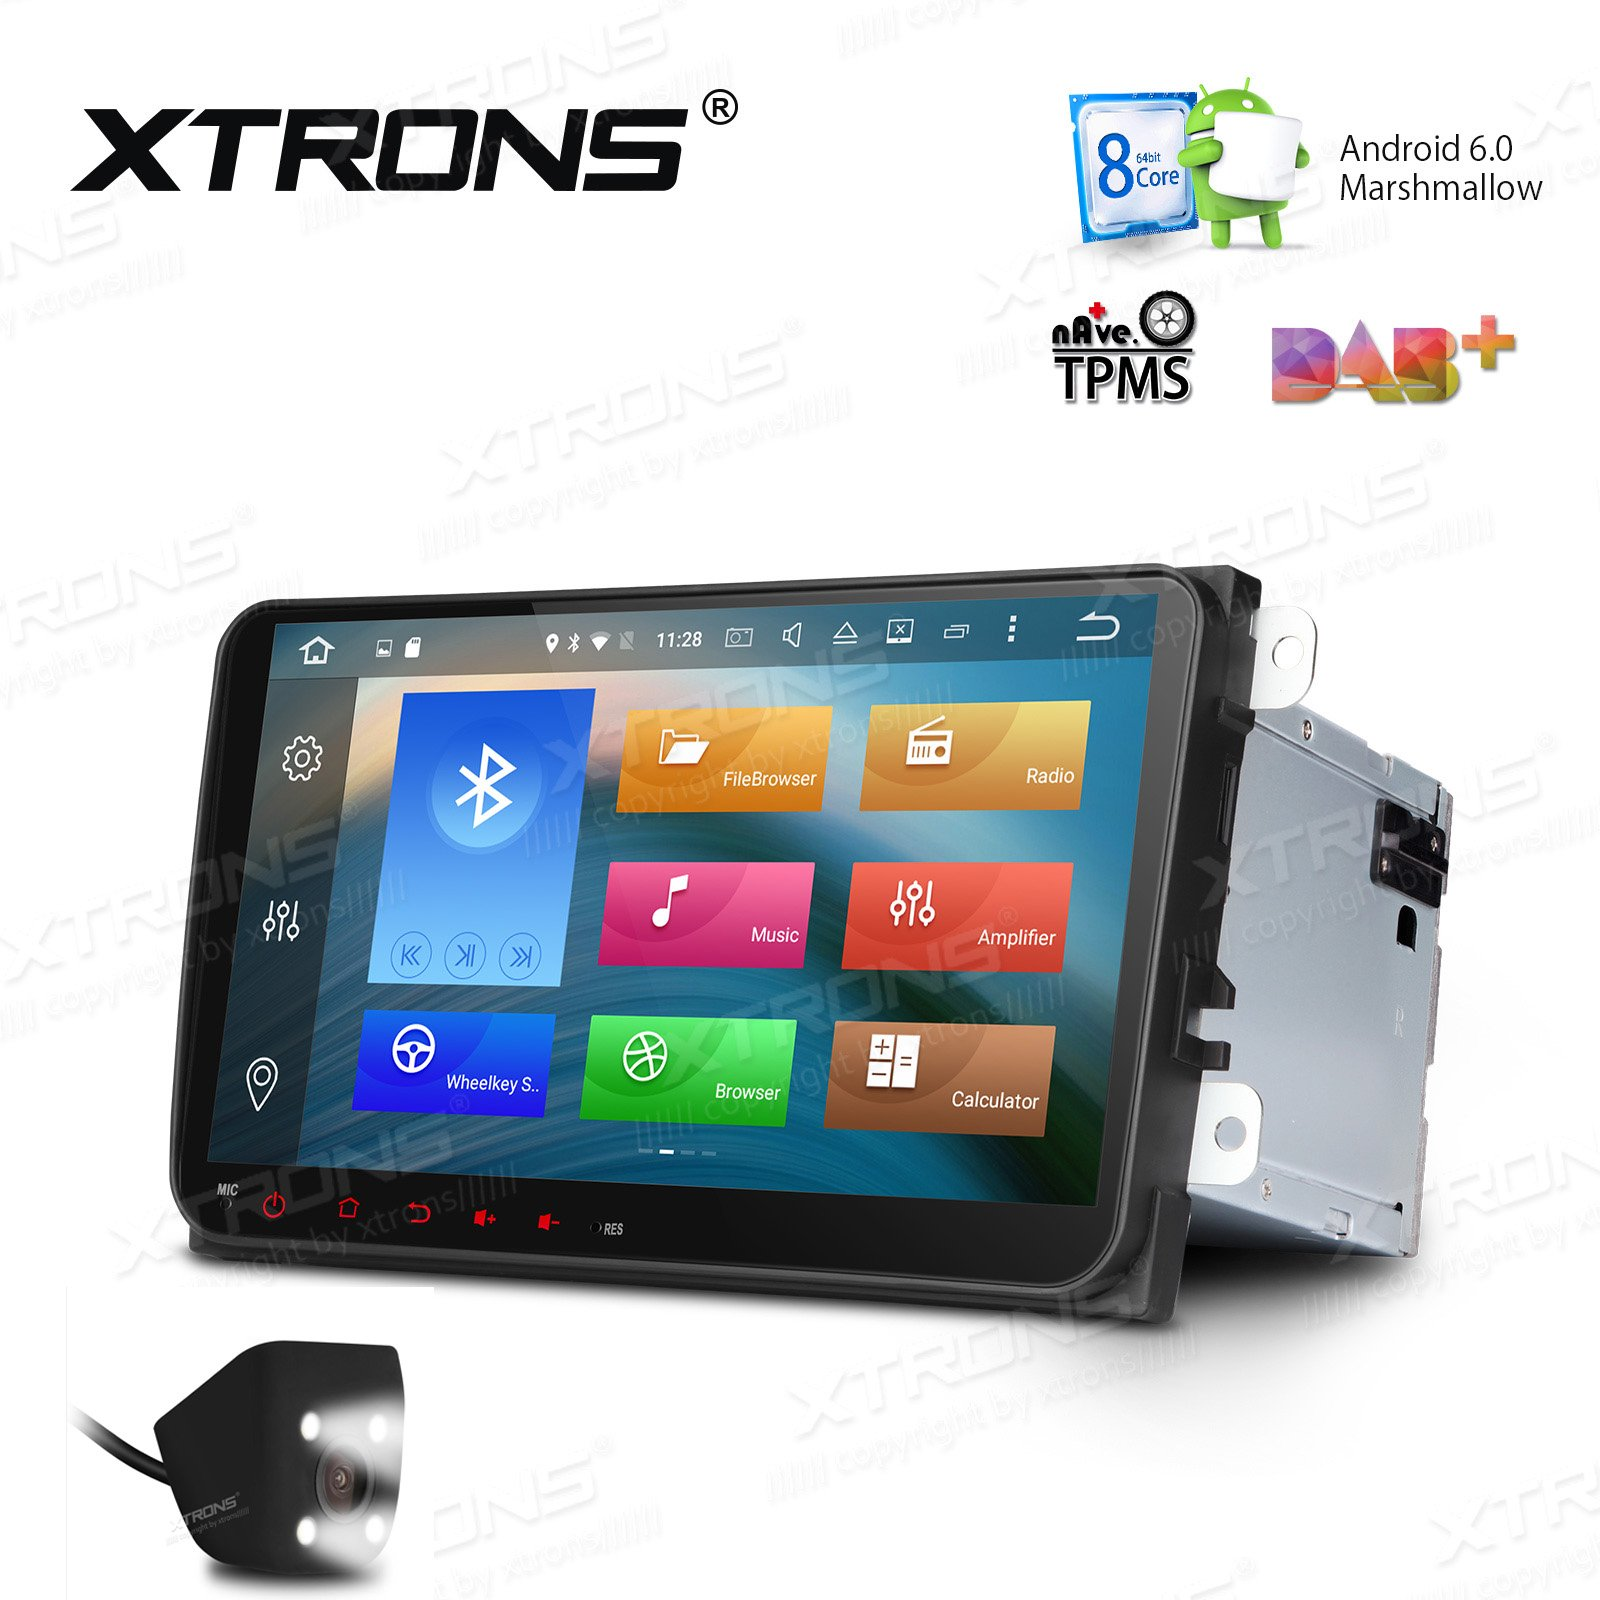 XTRONS Android 6.0 Octa-Core 9 Inch Capacitive Touch Screen Car Stereo Radio DVD Player Screen Mirroring Function OBD2 Tire Pressure Monitoring for VW Caddy Golf 2003-2013 Reversing Camera Included